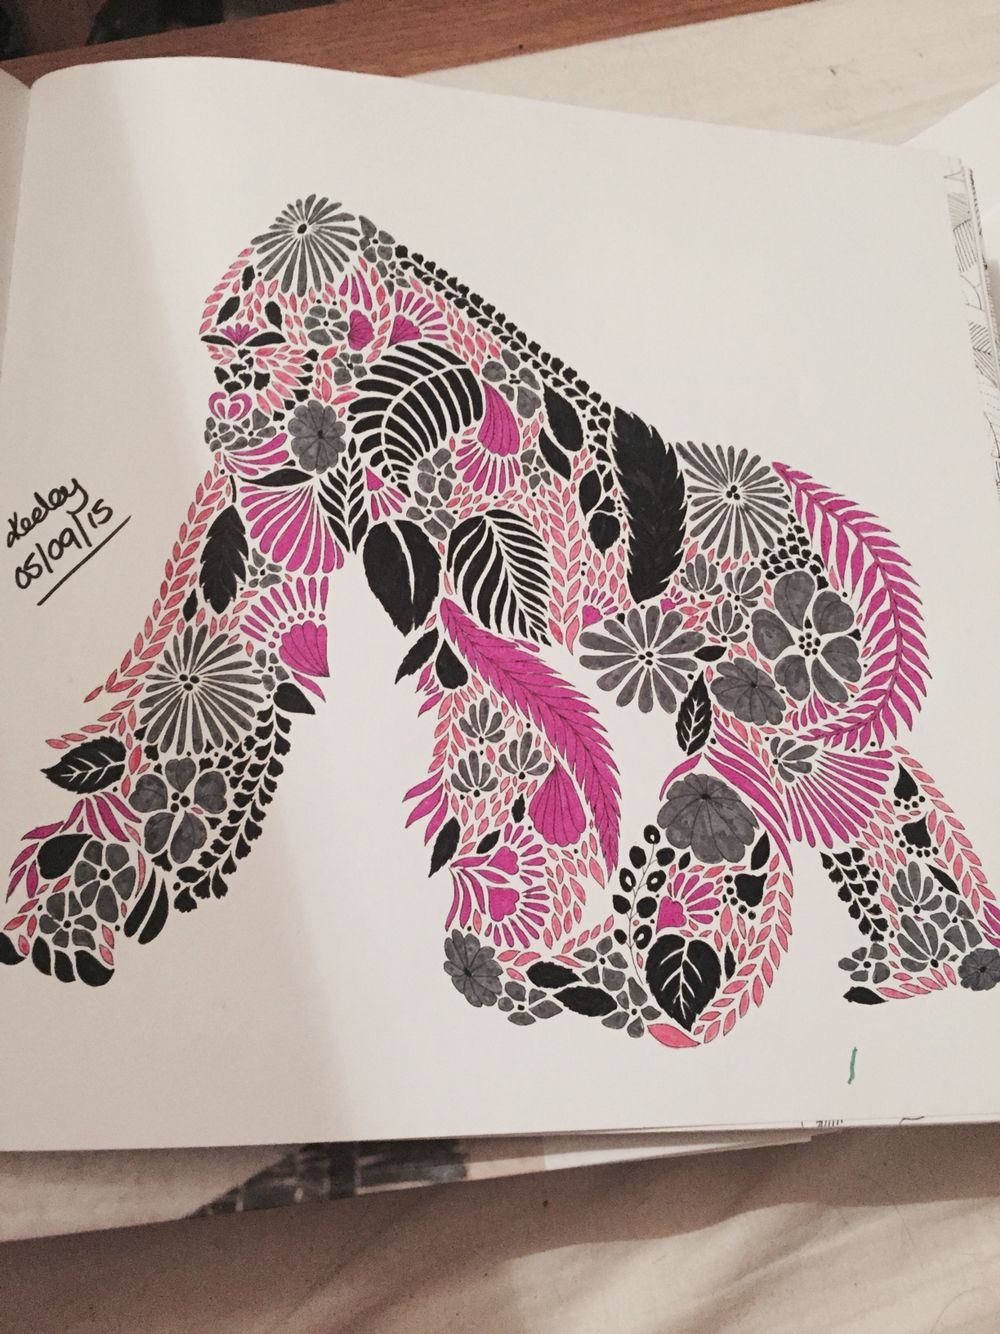 From Millie Marottas Animal Kingdom Colouring Book